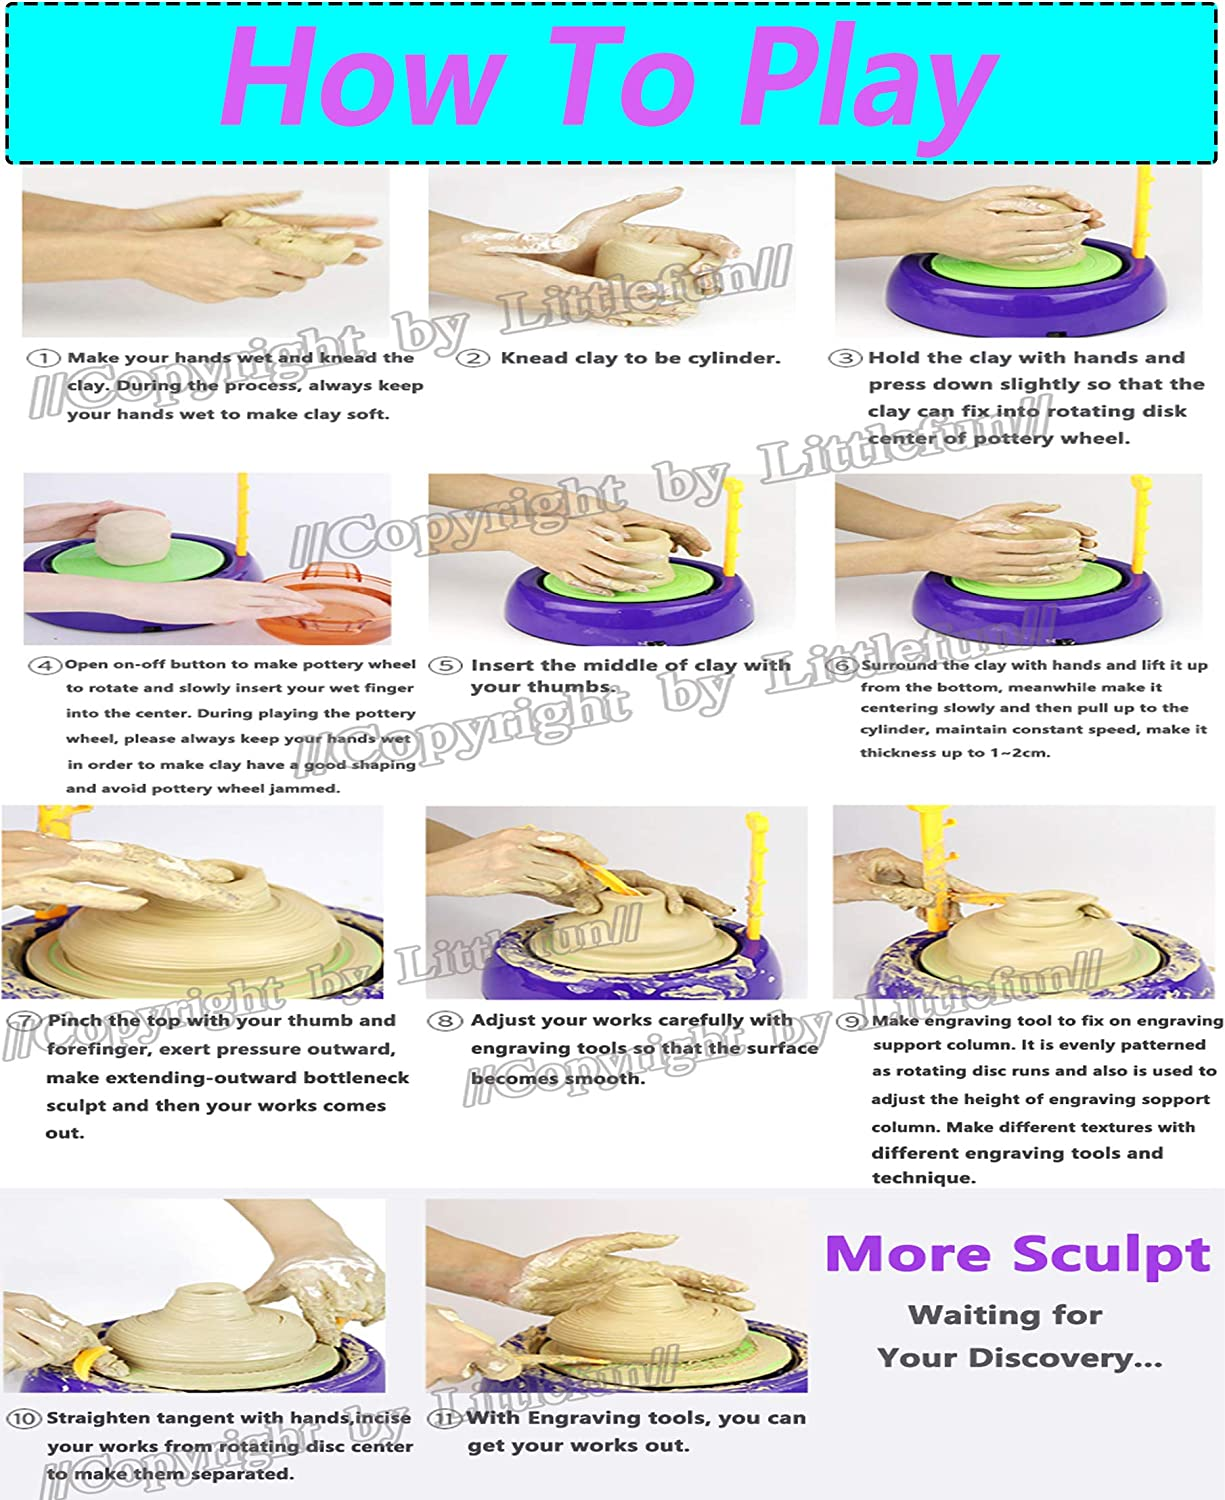 LITTLEFUN Art Pottery Artist Studio Spin Clay Pottery Wheel Game Craft Kit DIY Educational Toy for Kids Age 6 and Up Purple